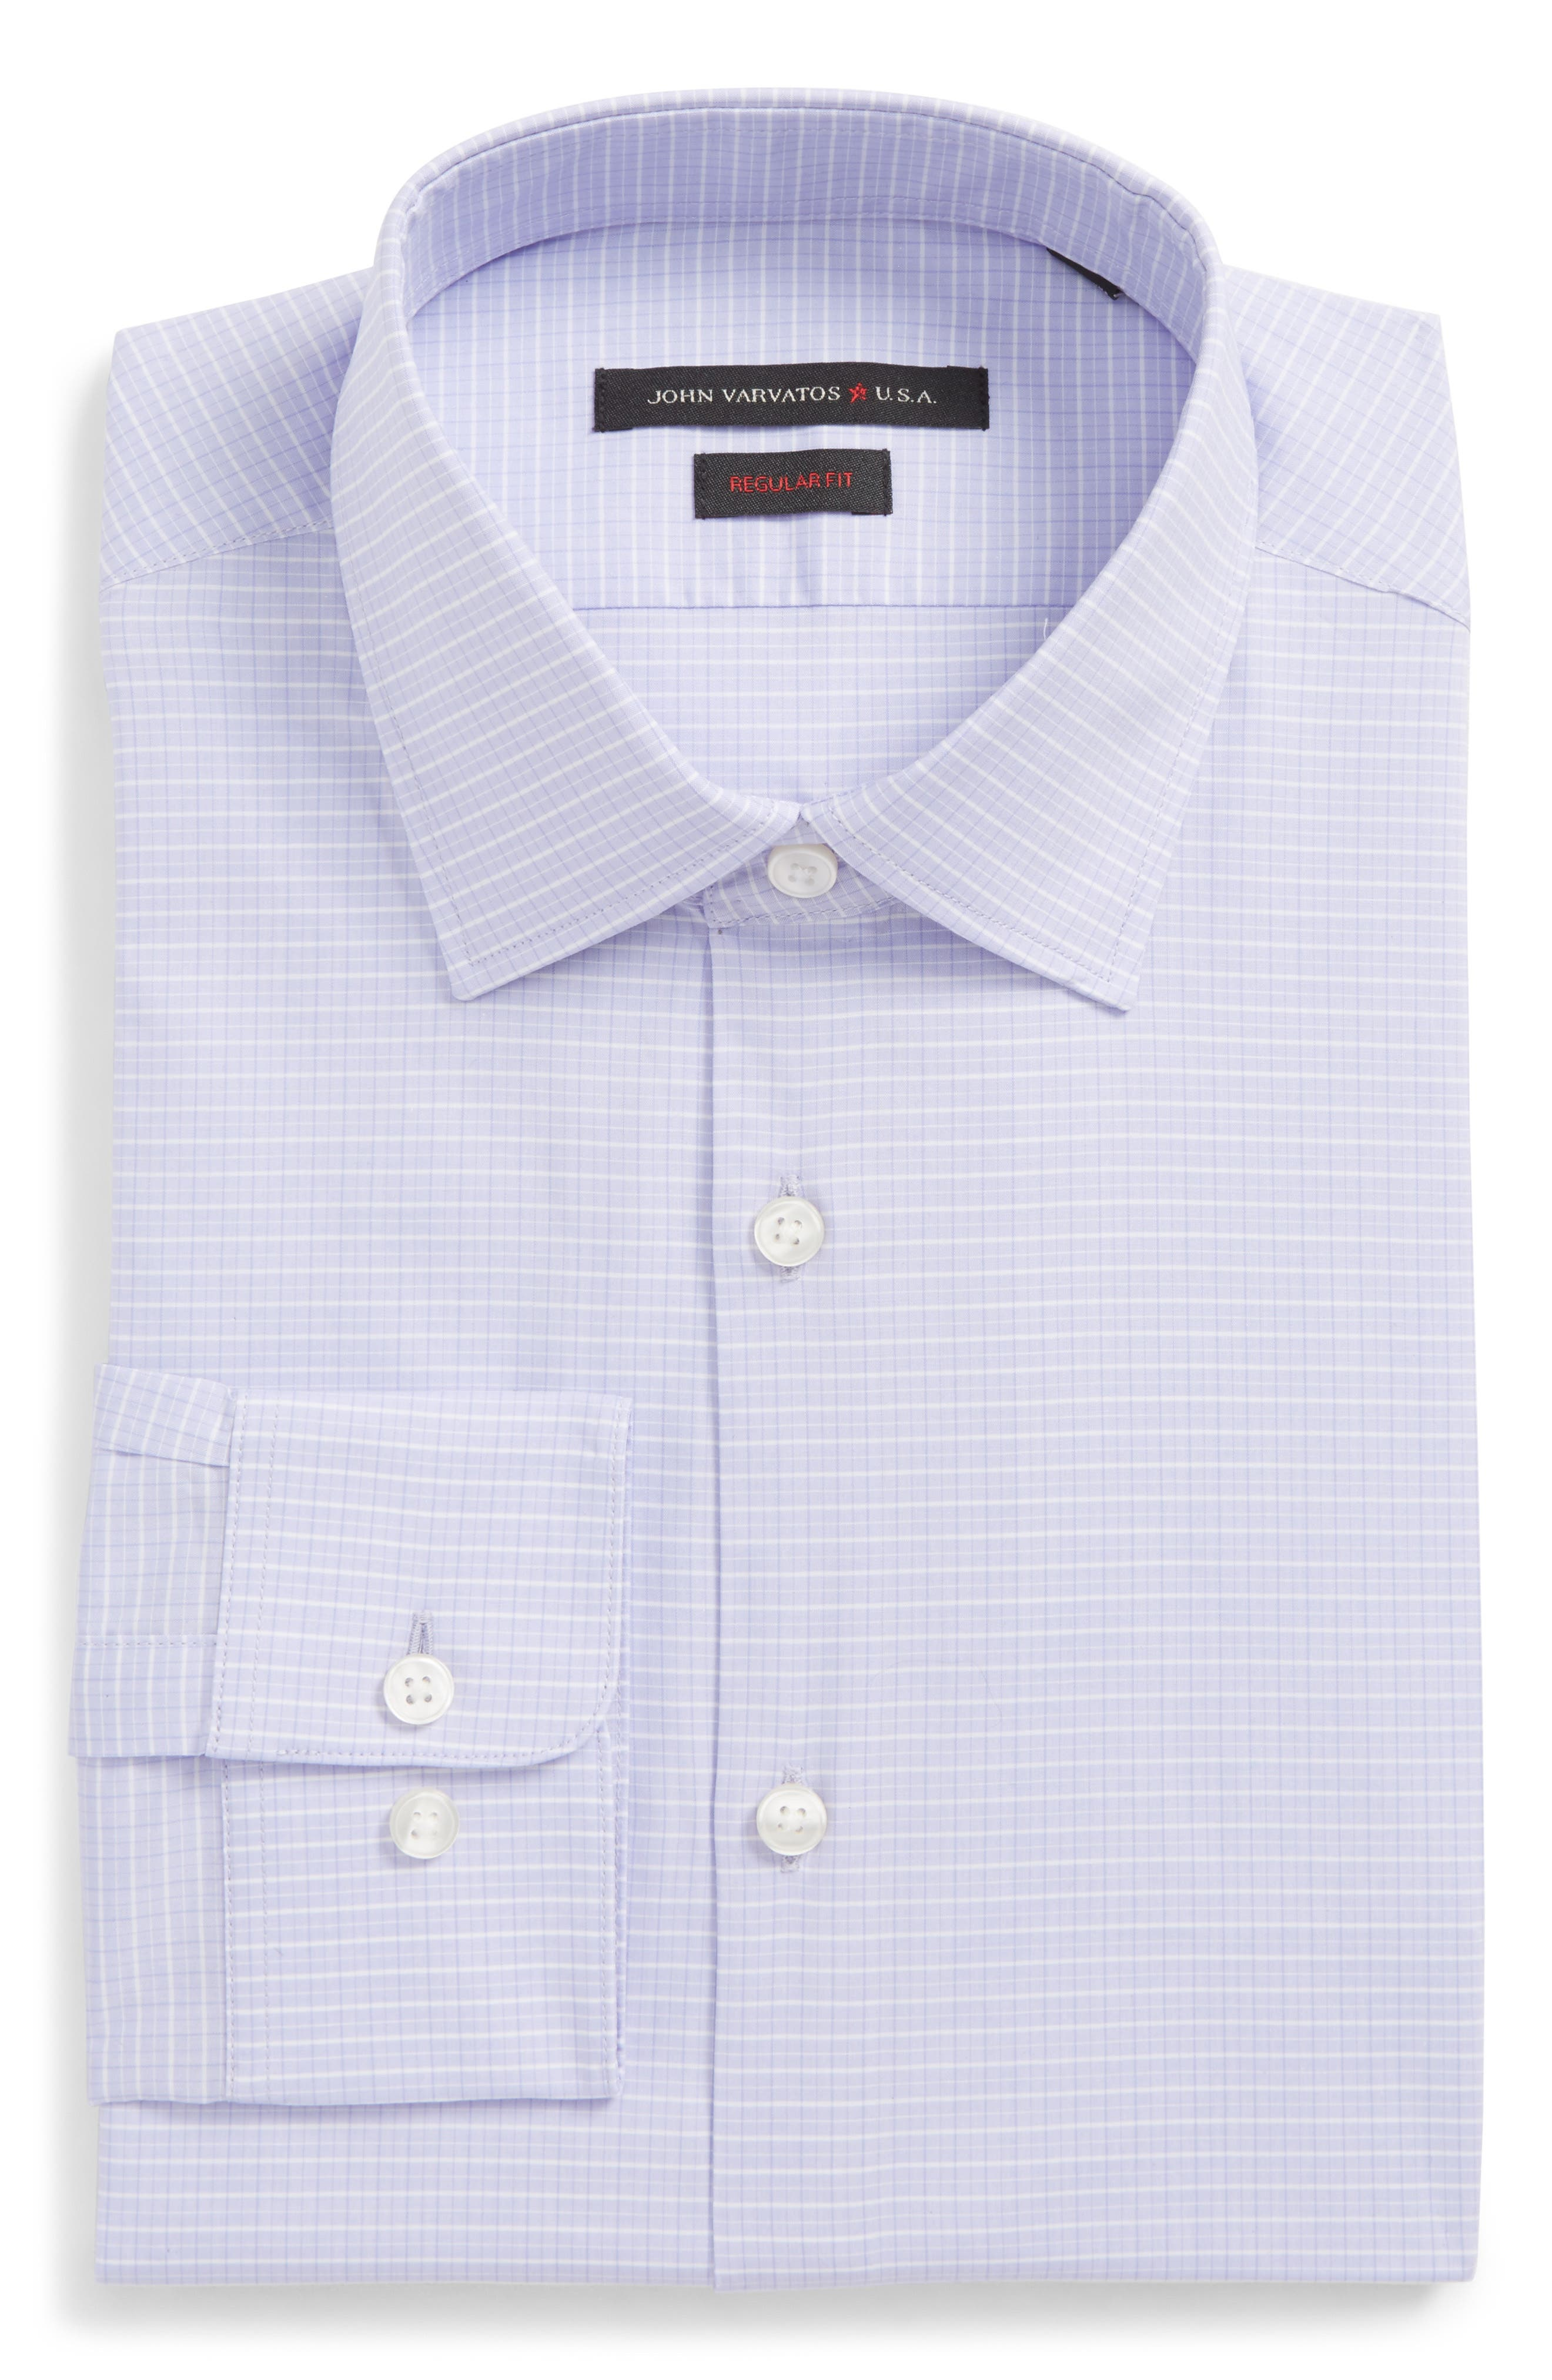 Regular Fit Stretch Check Dress Shirt,                         Main,                         color, 523